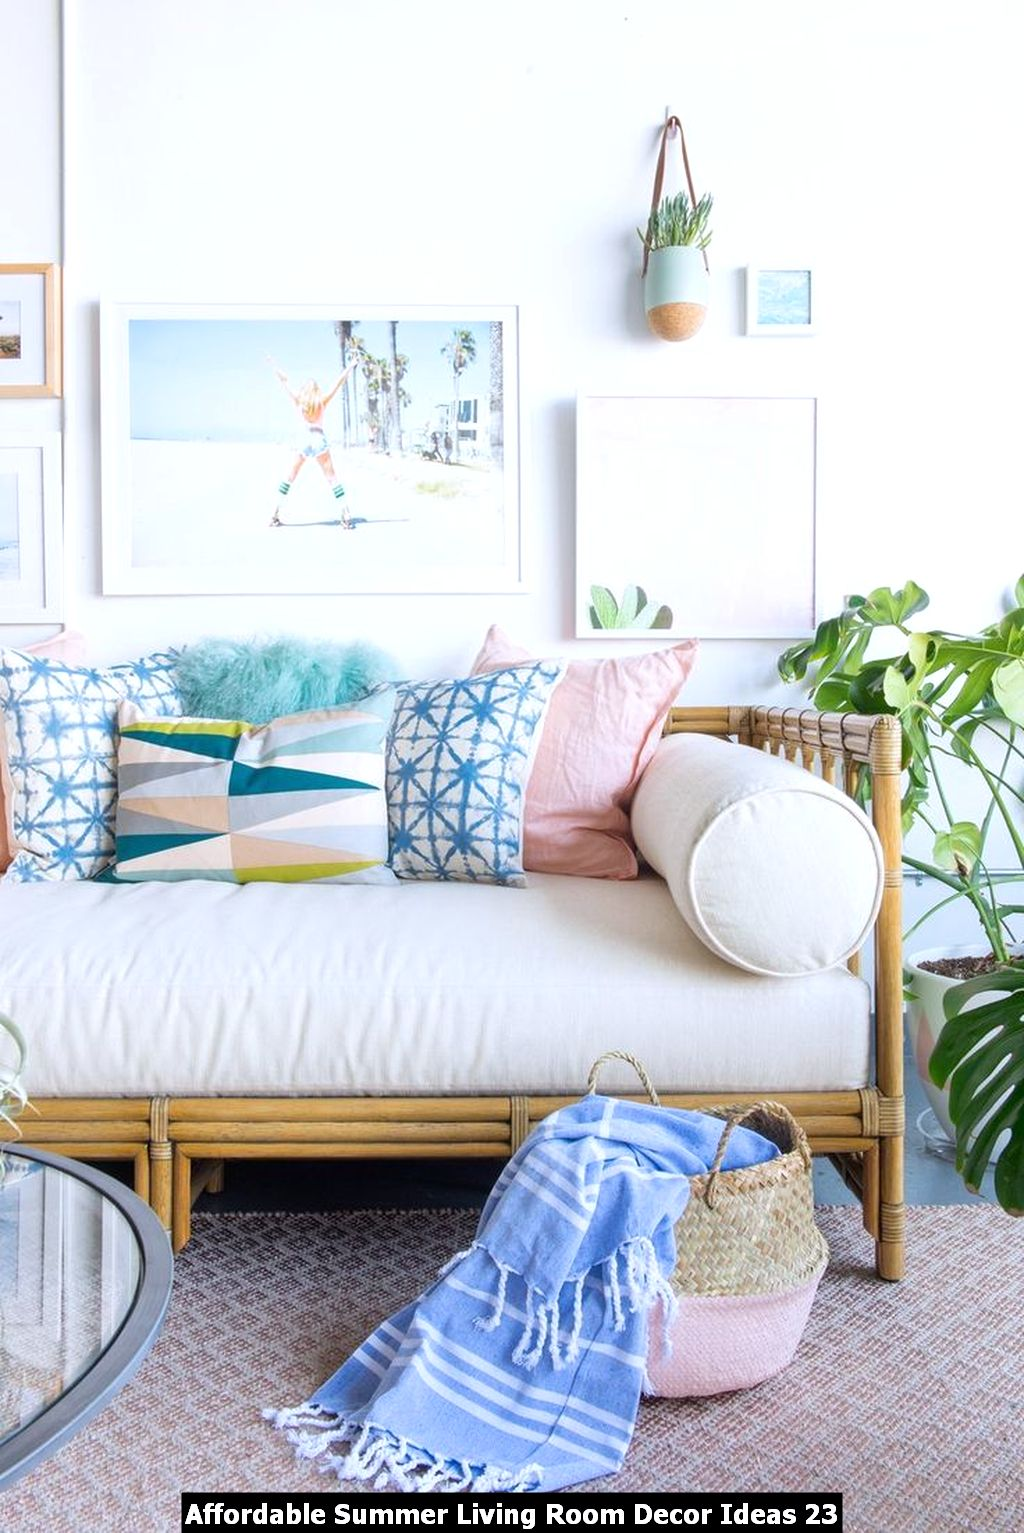 Affordable Summer Living Room Decor Ideas 23